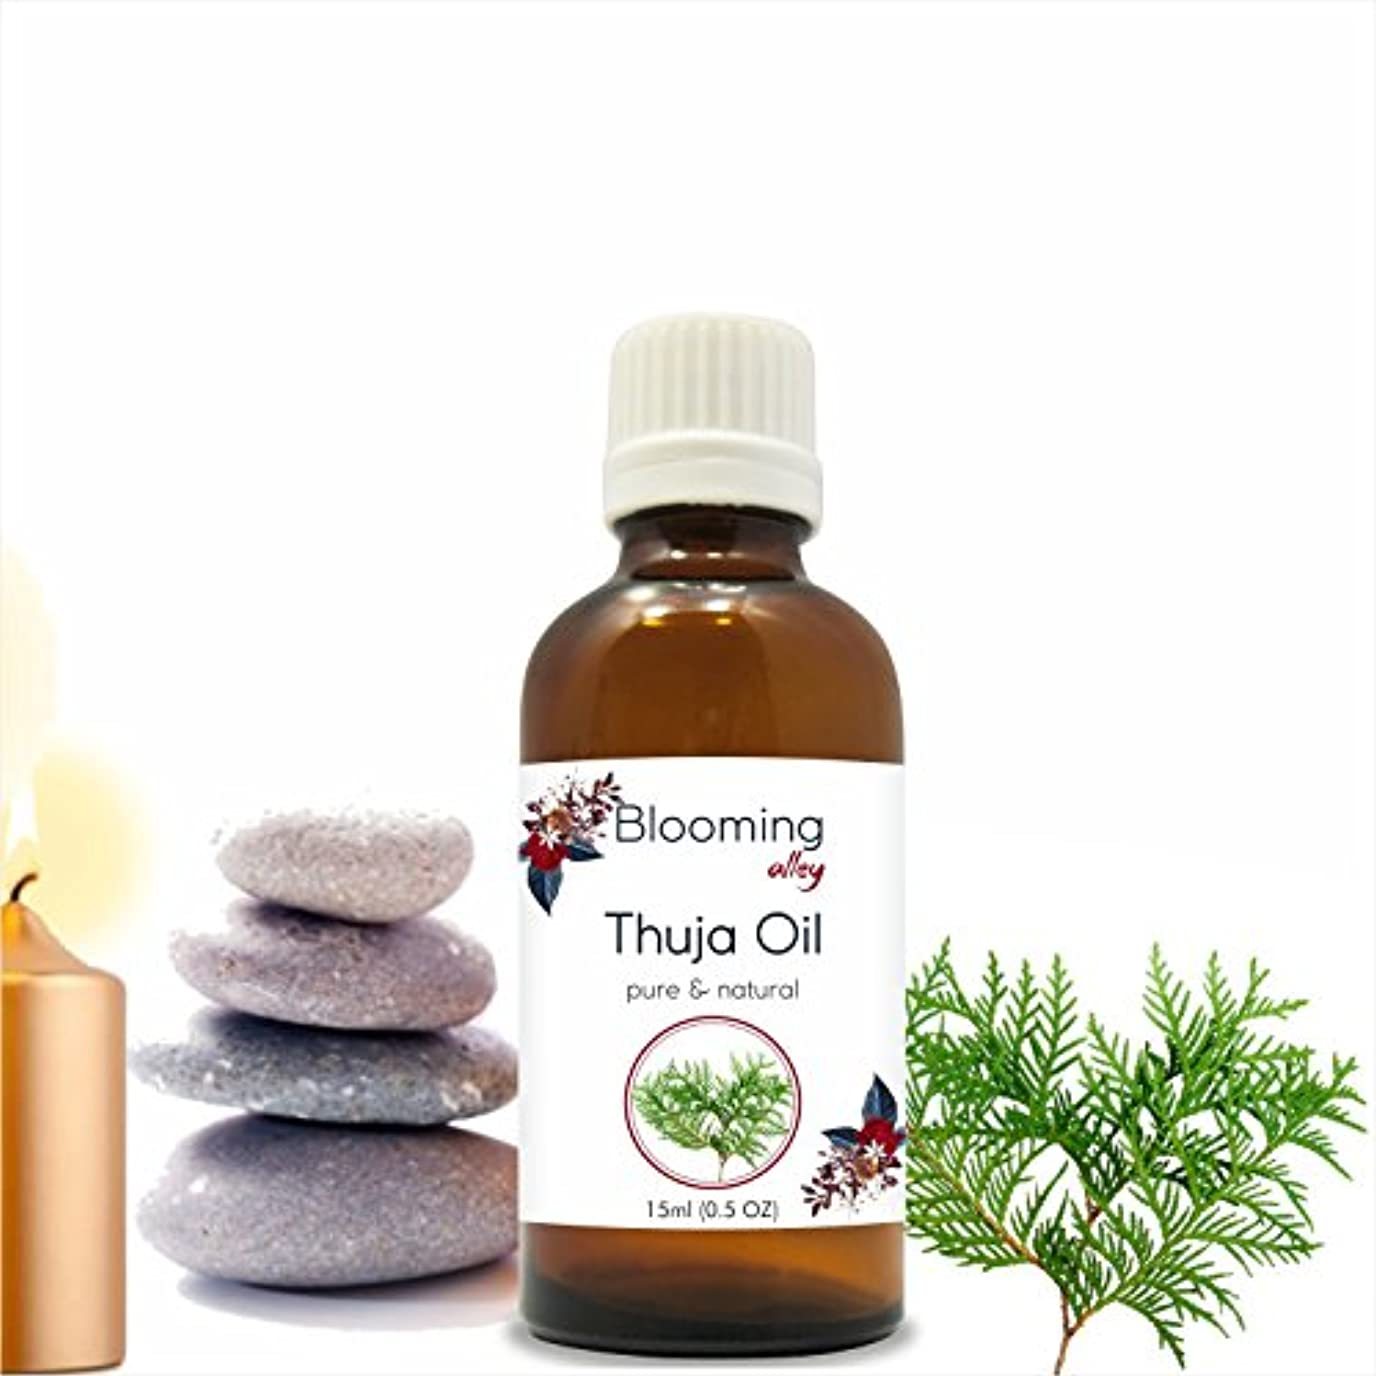 Thuja Oil(Thuja Orientali) Essential Oil 15 ml or .50 Fl Oz by Blooming Alley